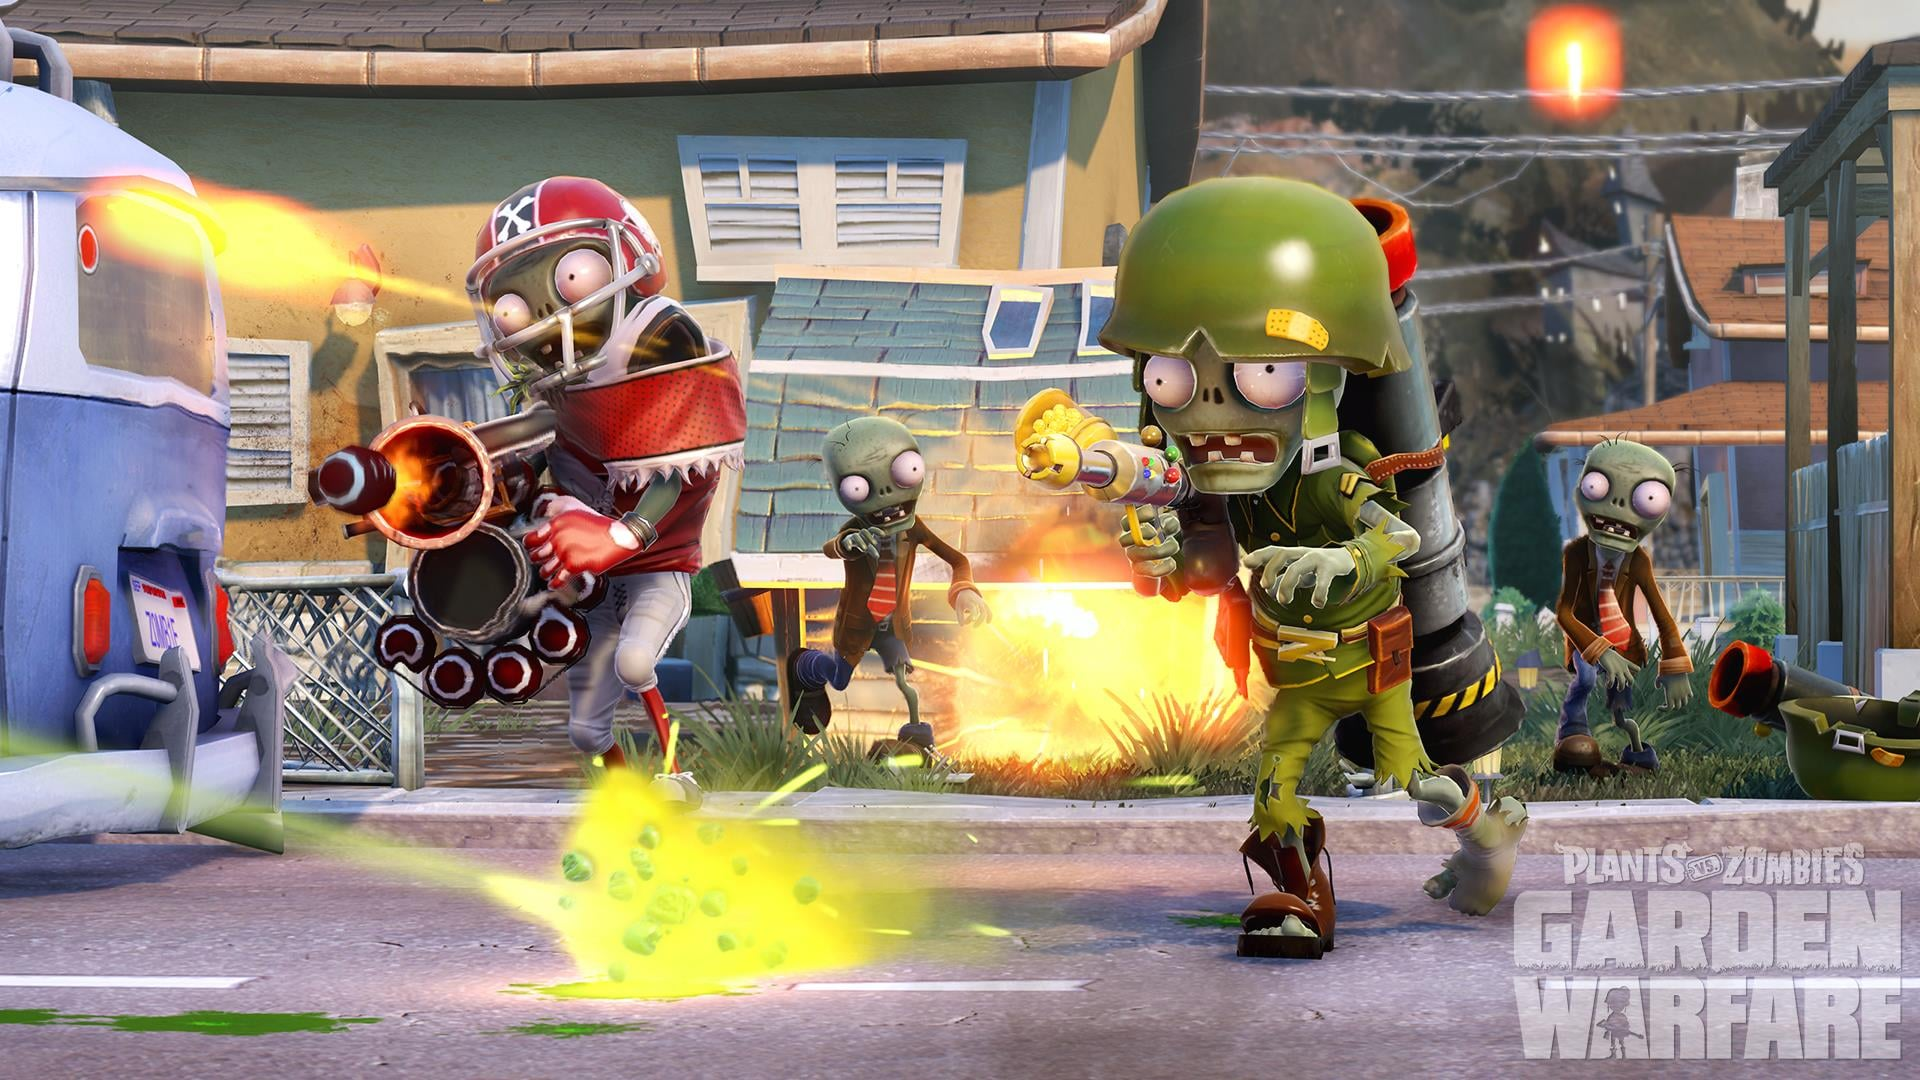 Plants Vs. Zombies: Garden Warfare Will Debut On The Xbox One And The Xbox  360 In Spring 2014.